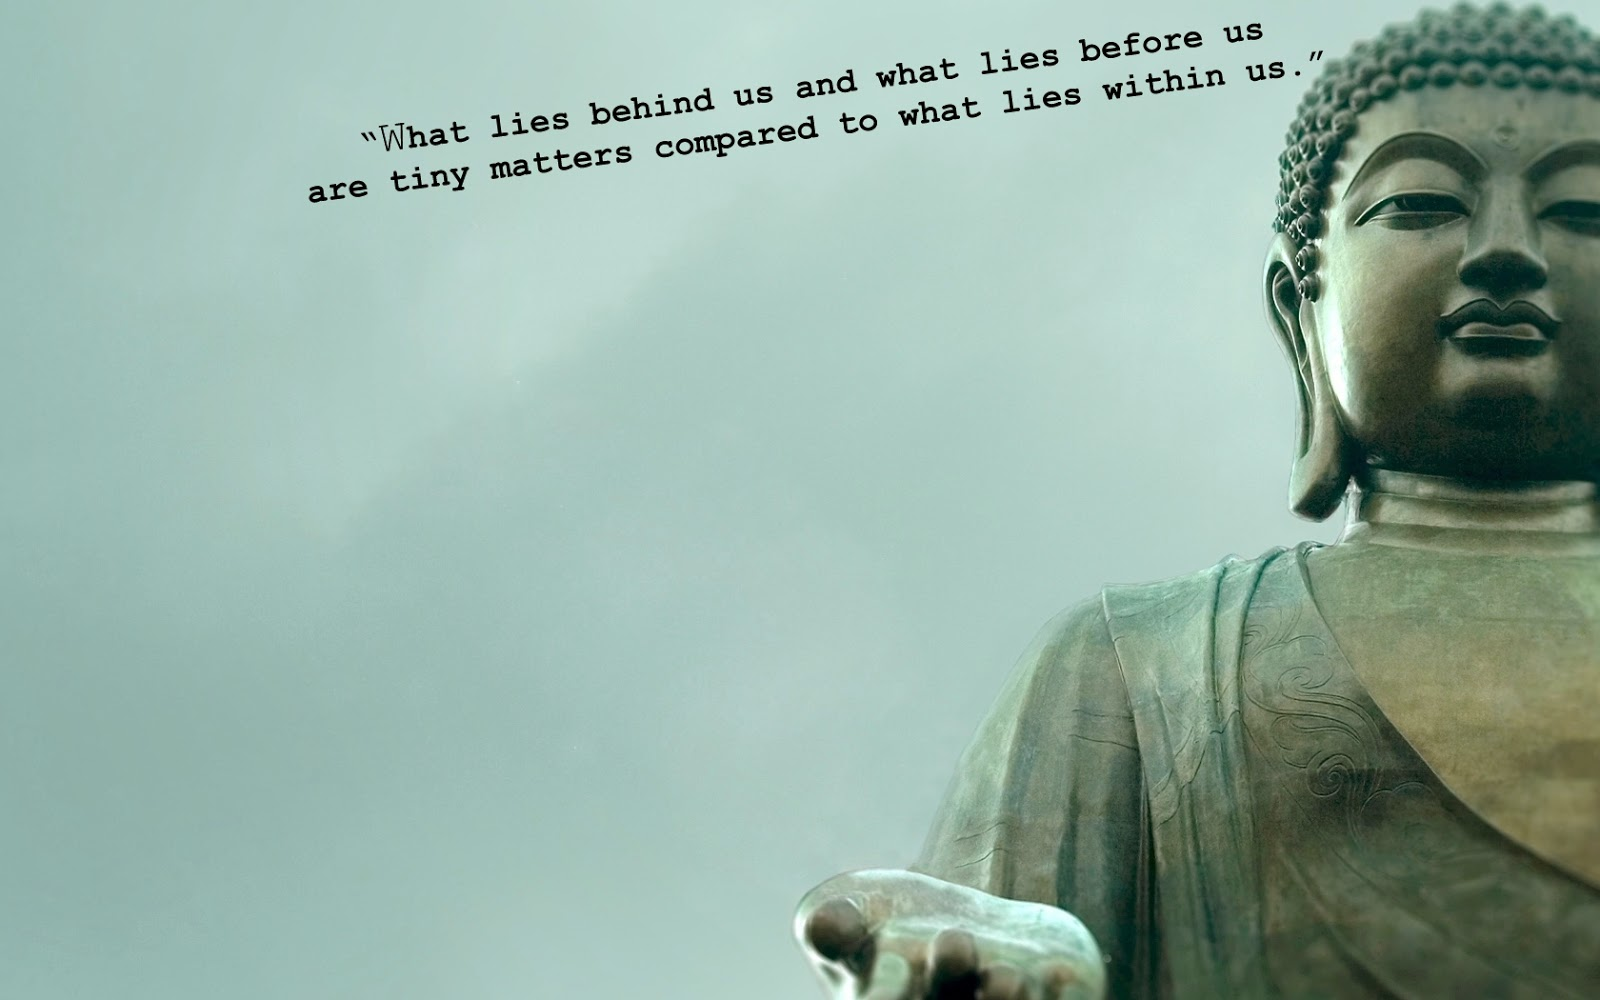 Real Buddha Quotes Buddha Wallpapers With Quotes On Life And Happiness Hd Pictures